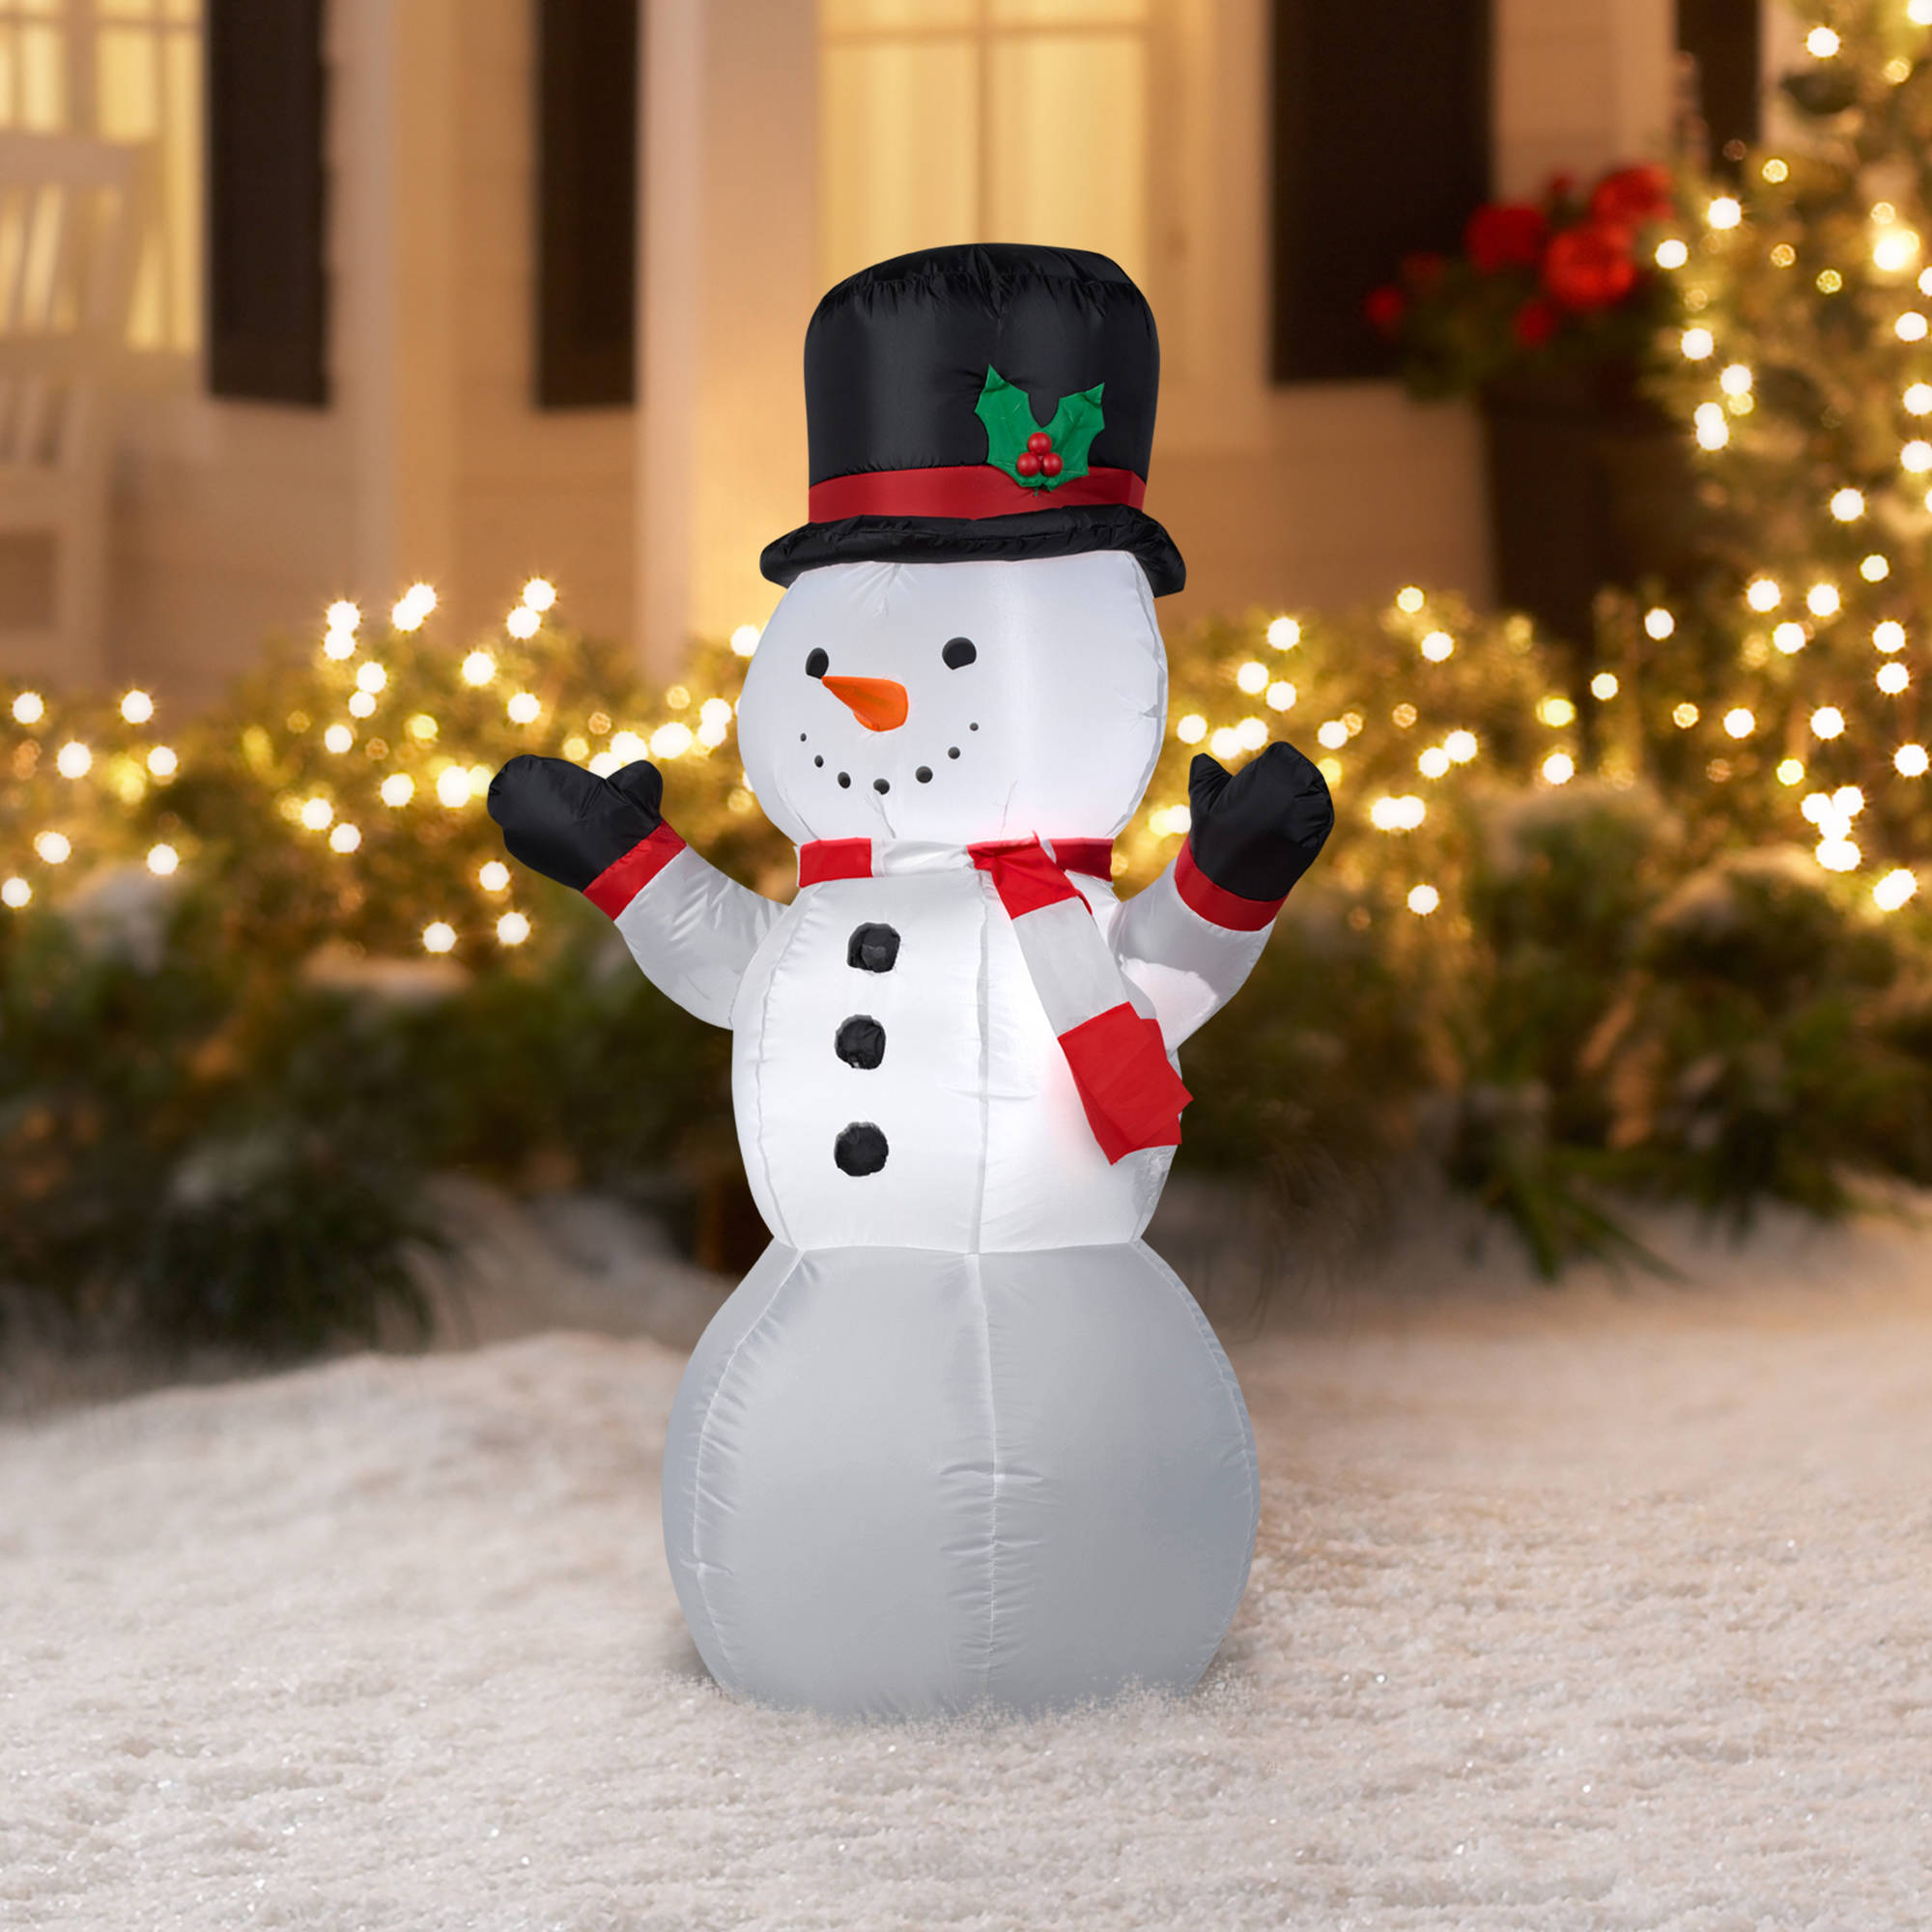 ip en d top decor outdoor hat snowman decorations decoration art christmas with yard winter chenille lighted